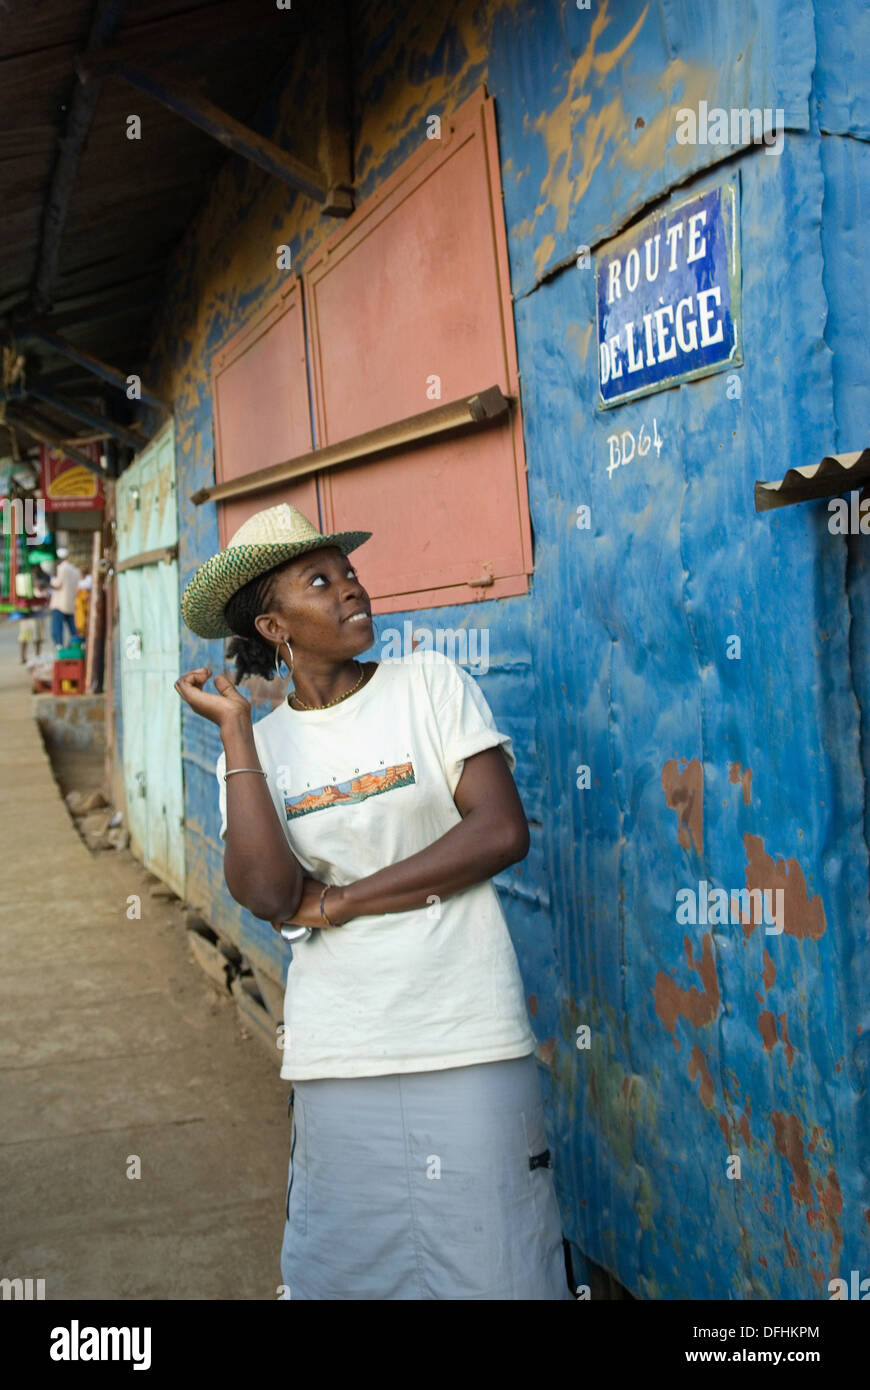 young Malagassy woman, Hell-Ville Andoany, Nosy Be island, Republic of Madagascar, Indian Ocean - Stock Image